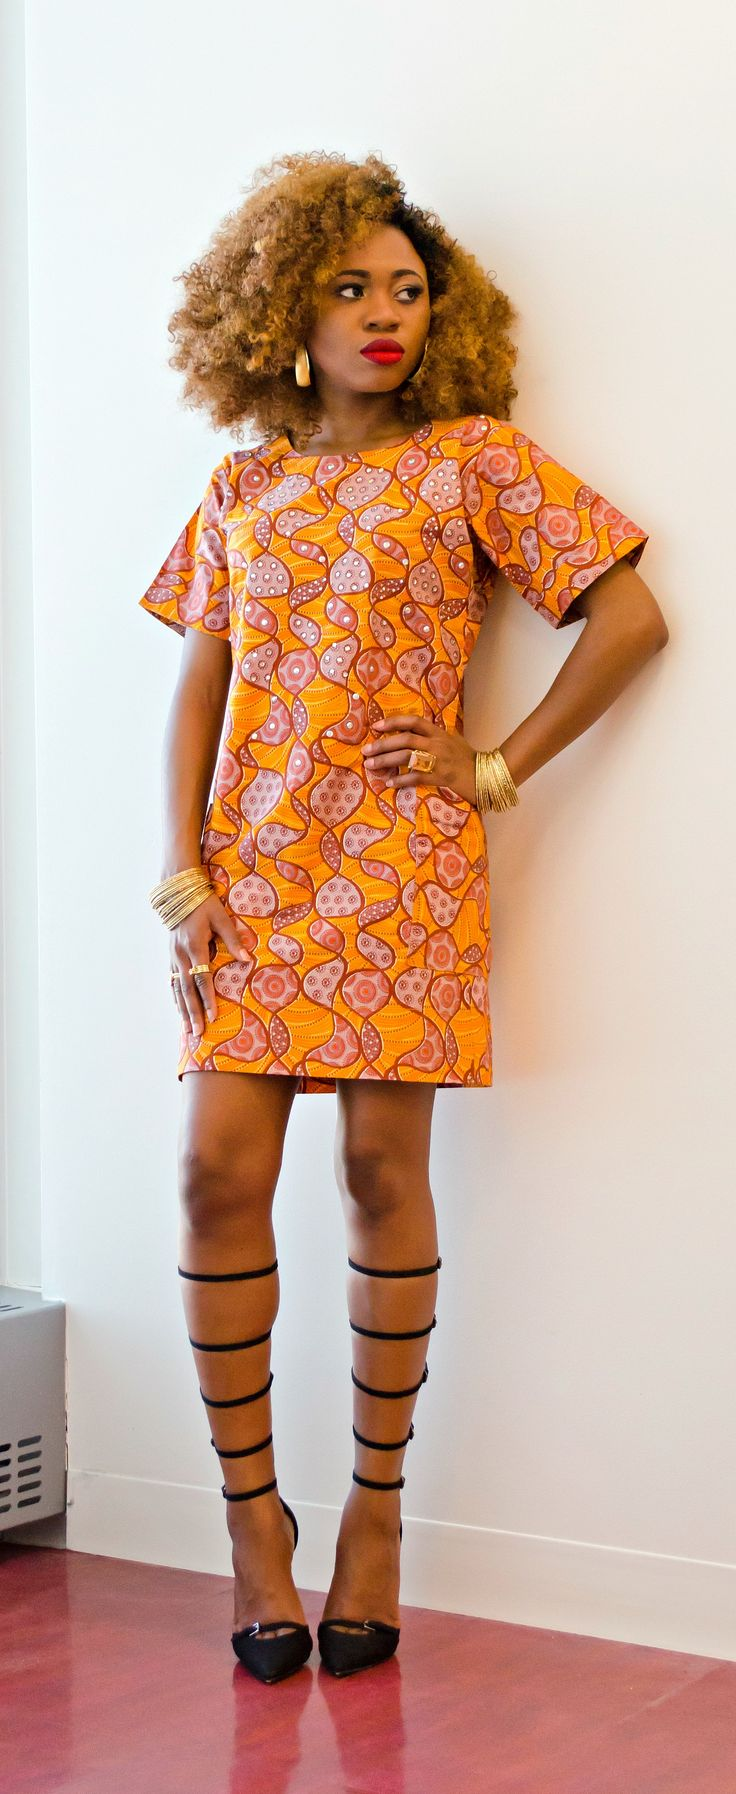 Sharing this chic African print Ankara rhinestone dress paired with a multi-strap suede sandals. There's a lot to be thankful for even in the midst of a storm. Hold your head up and keep going because tough times don't last but tough people do. Also find some other amazing Ankara styles that you'll love.